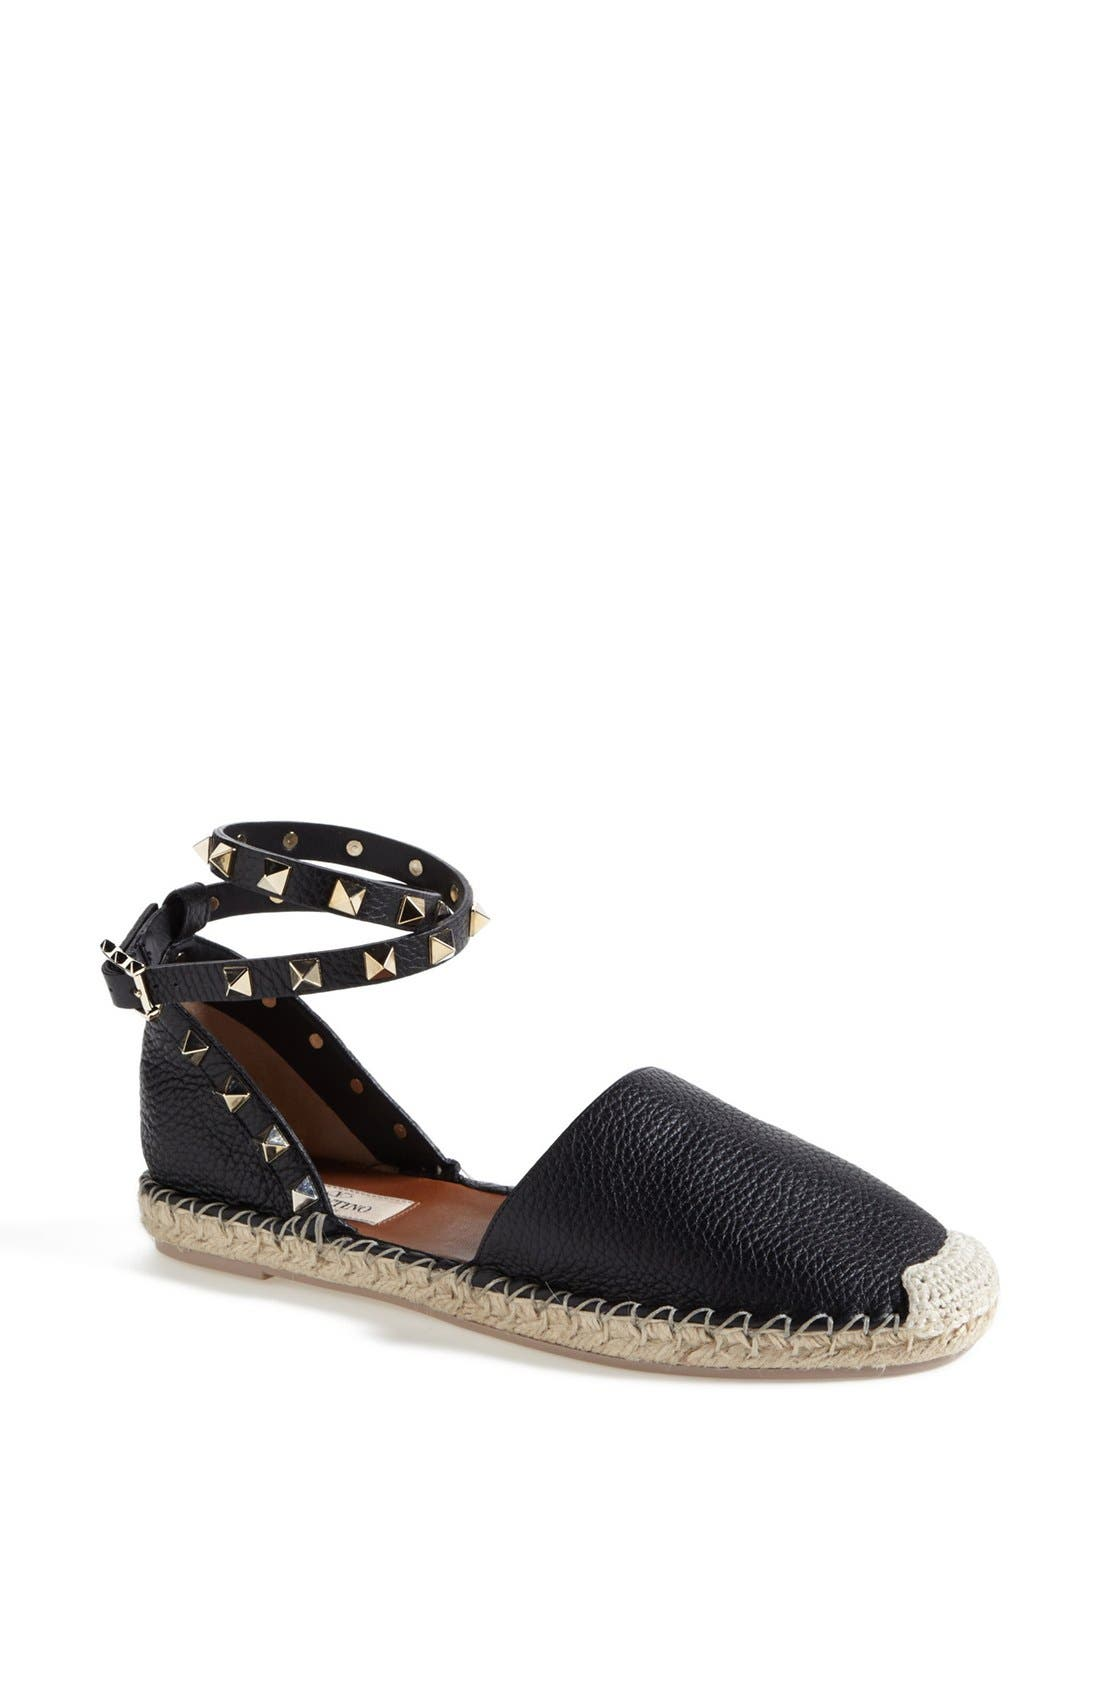 Main Image - Valentino Studded Ankle Wrap Espadrille Flat